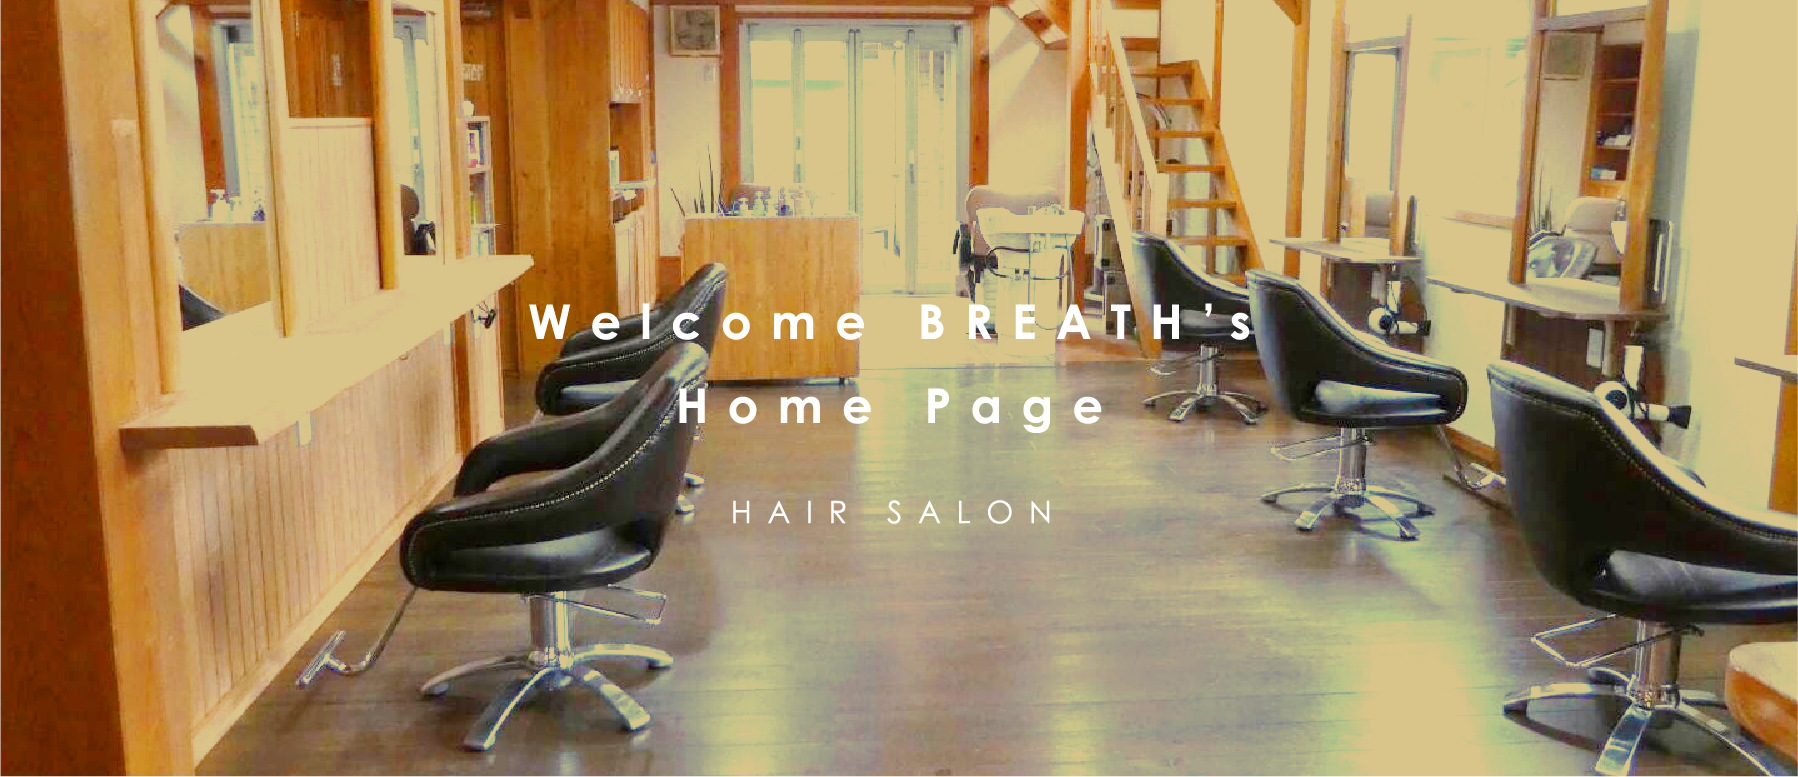 Welcome BREATH's Home Page HAIR SALON